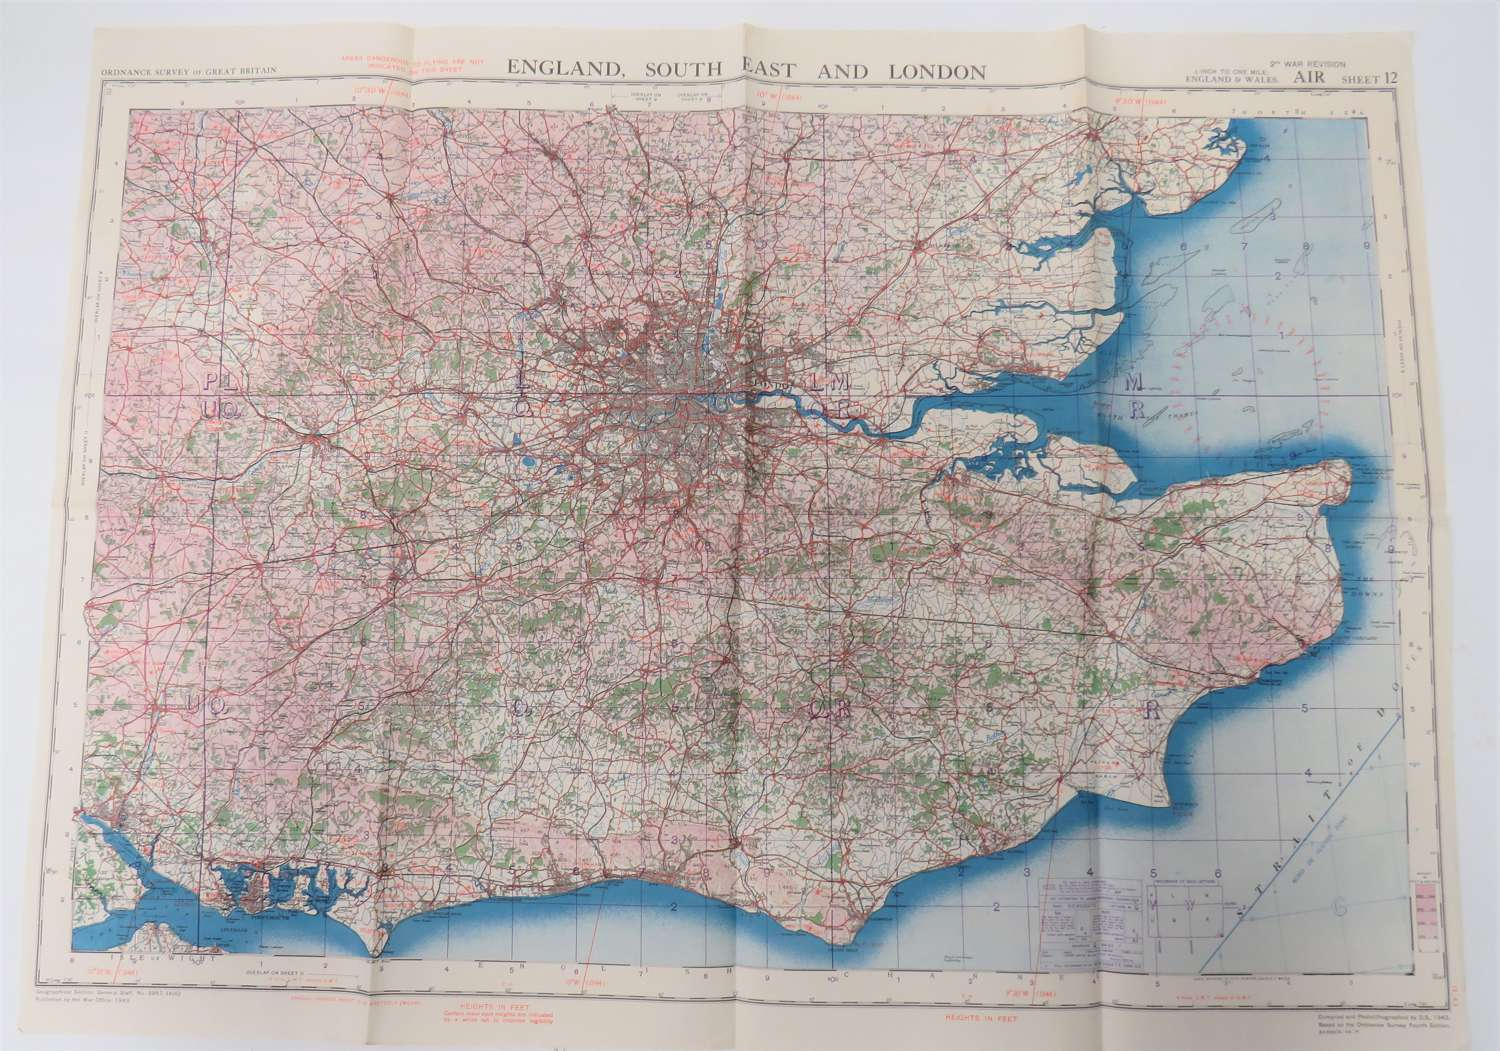 R.A.F Issue South East and London Map